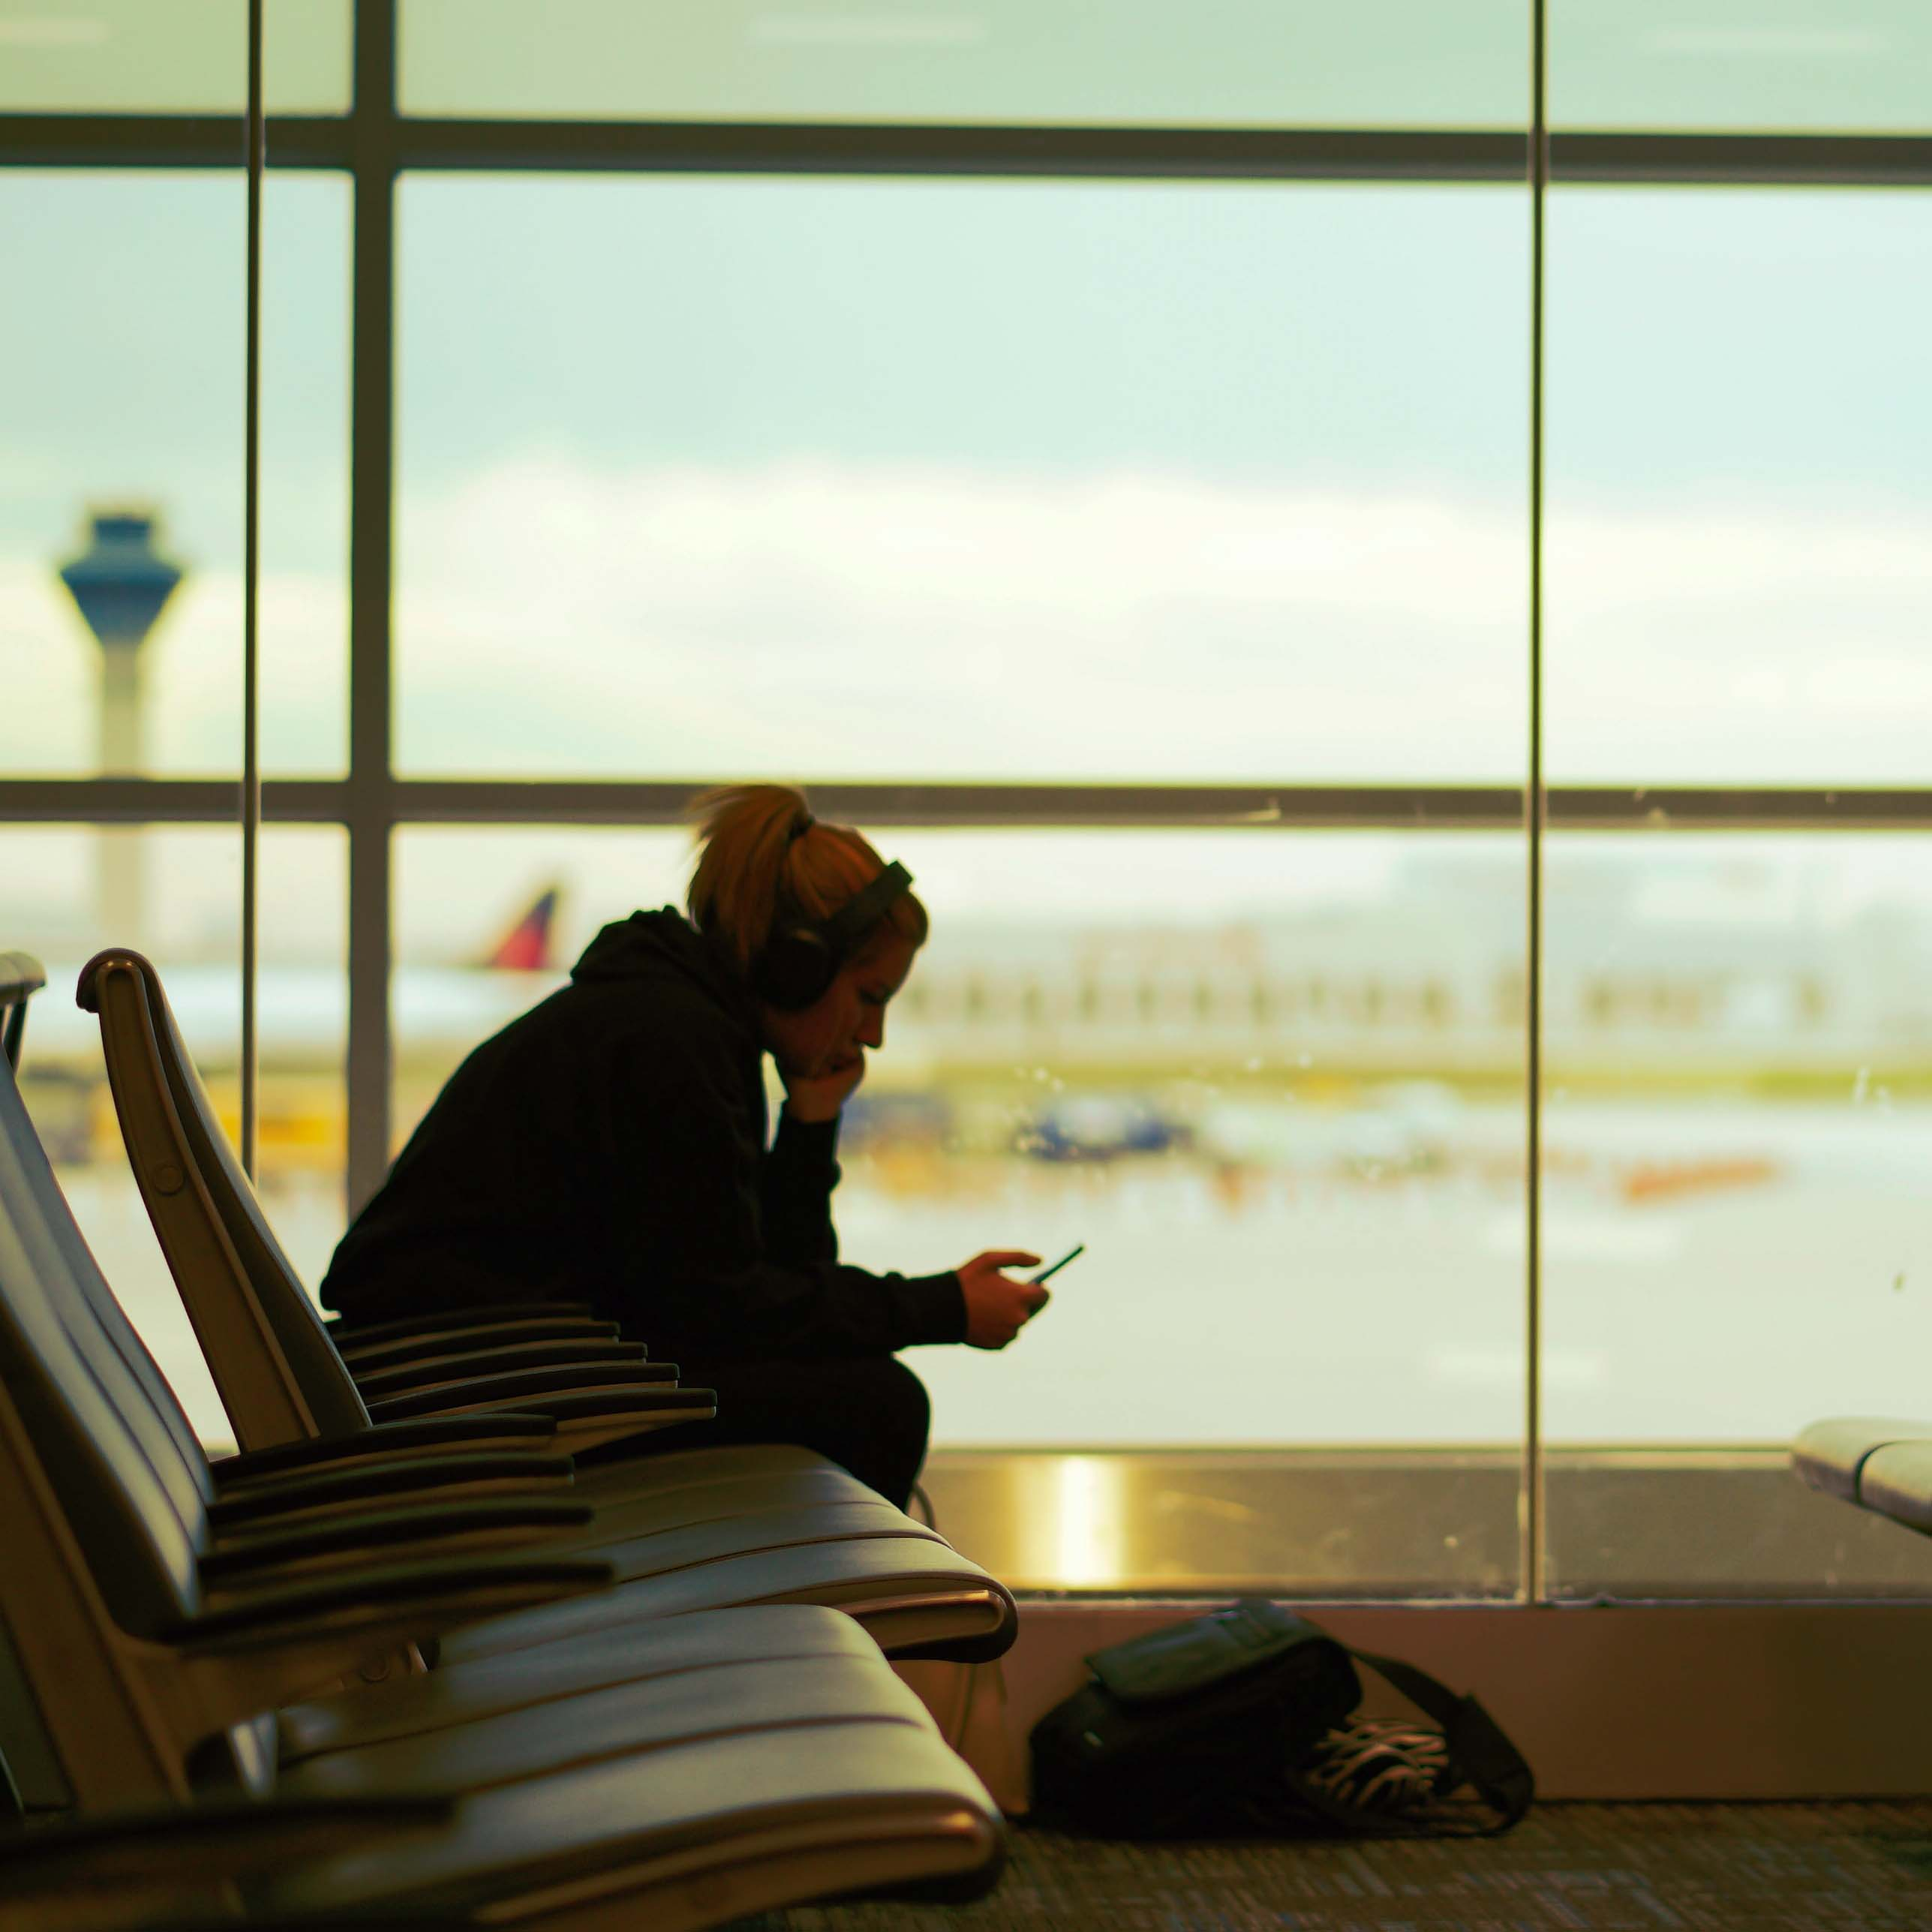 Leaving on a jet plane: Essential coping skills for flight anxiety